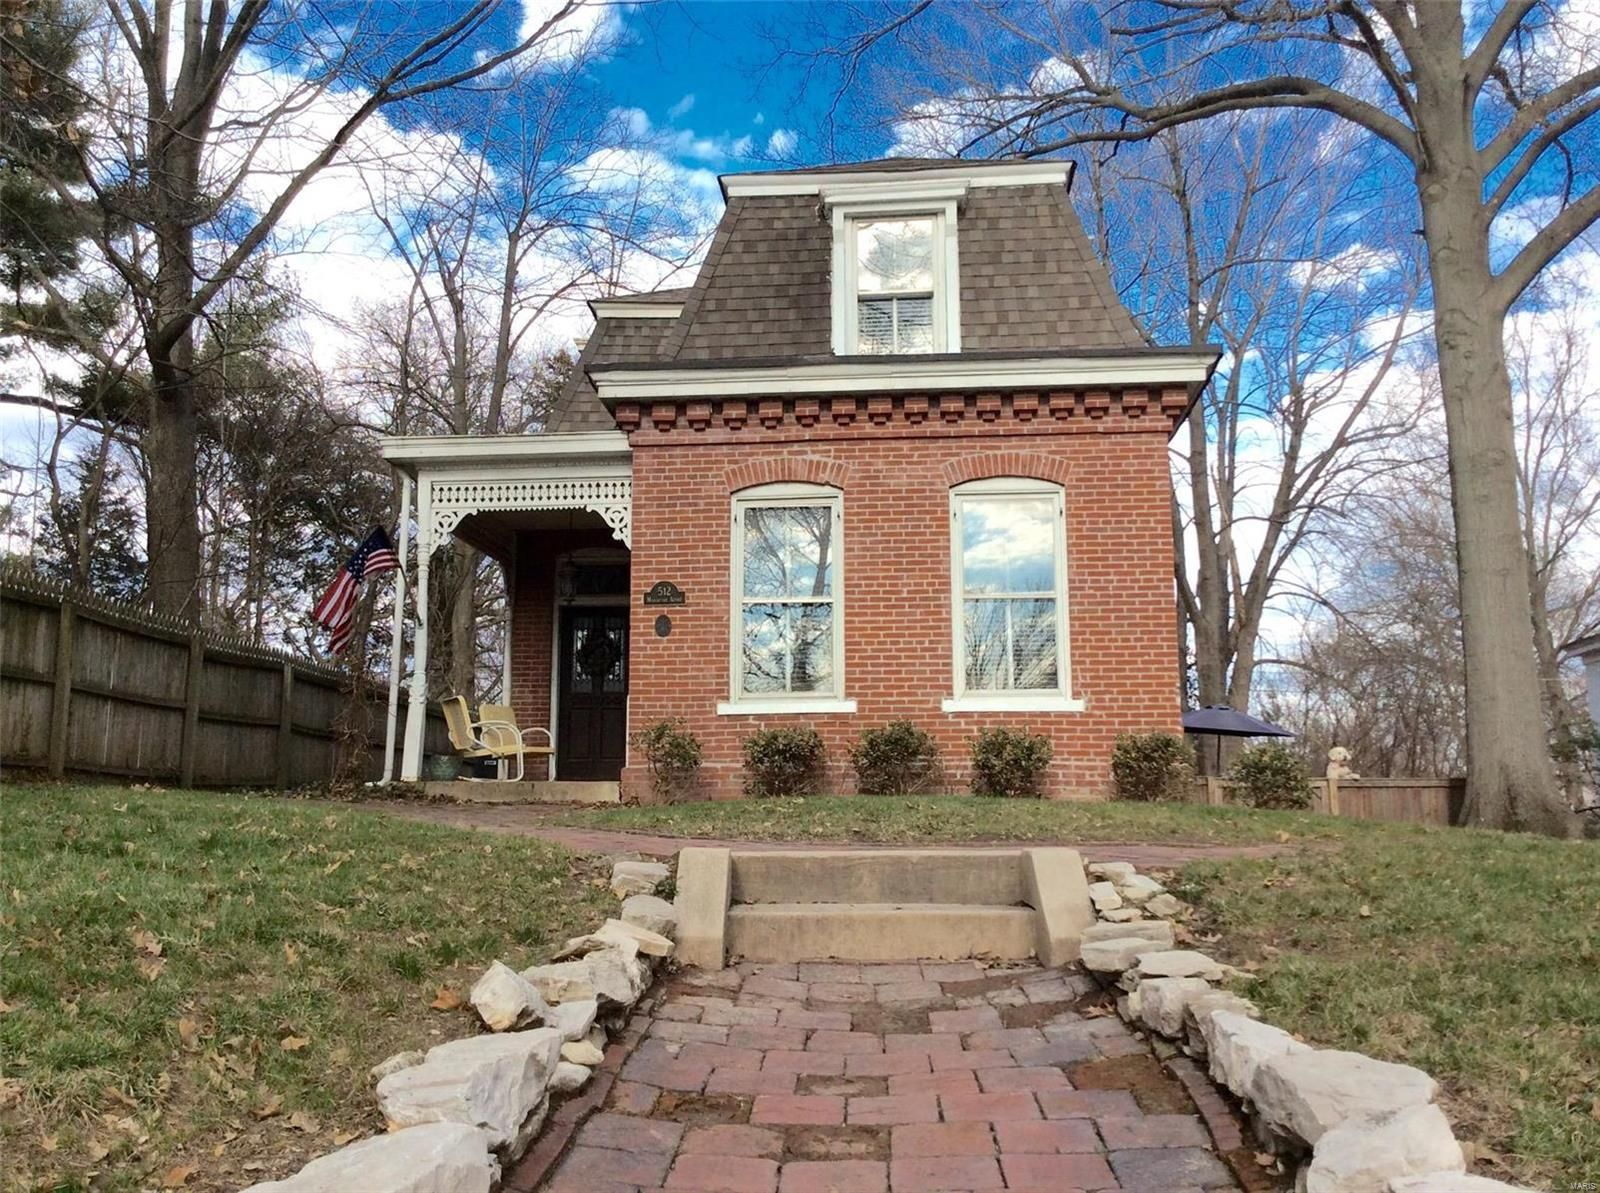 A Mansard Roofed Cottage That Is So Cute And Quaint Belleville Il 62220 Old Houses For Sale Cottage Belleville